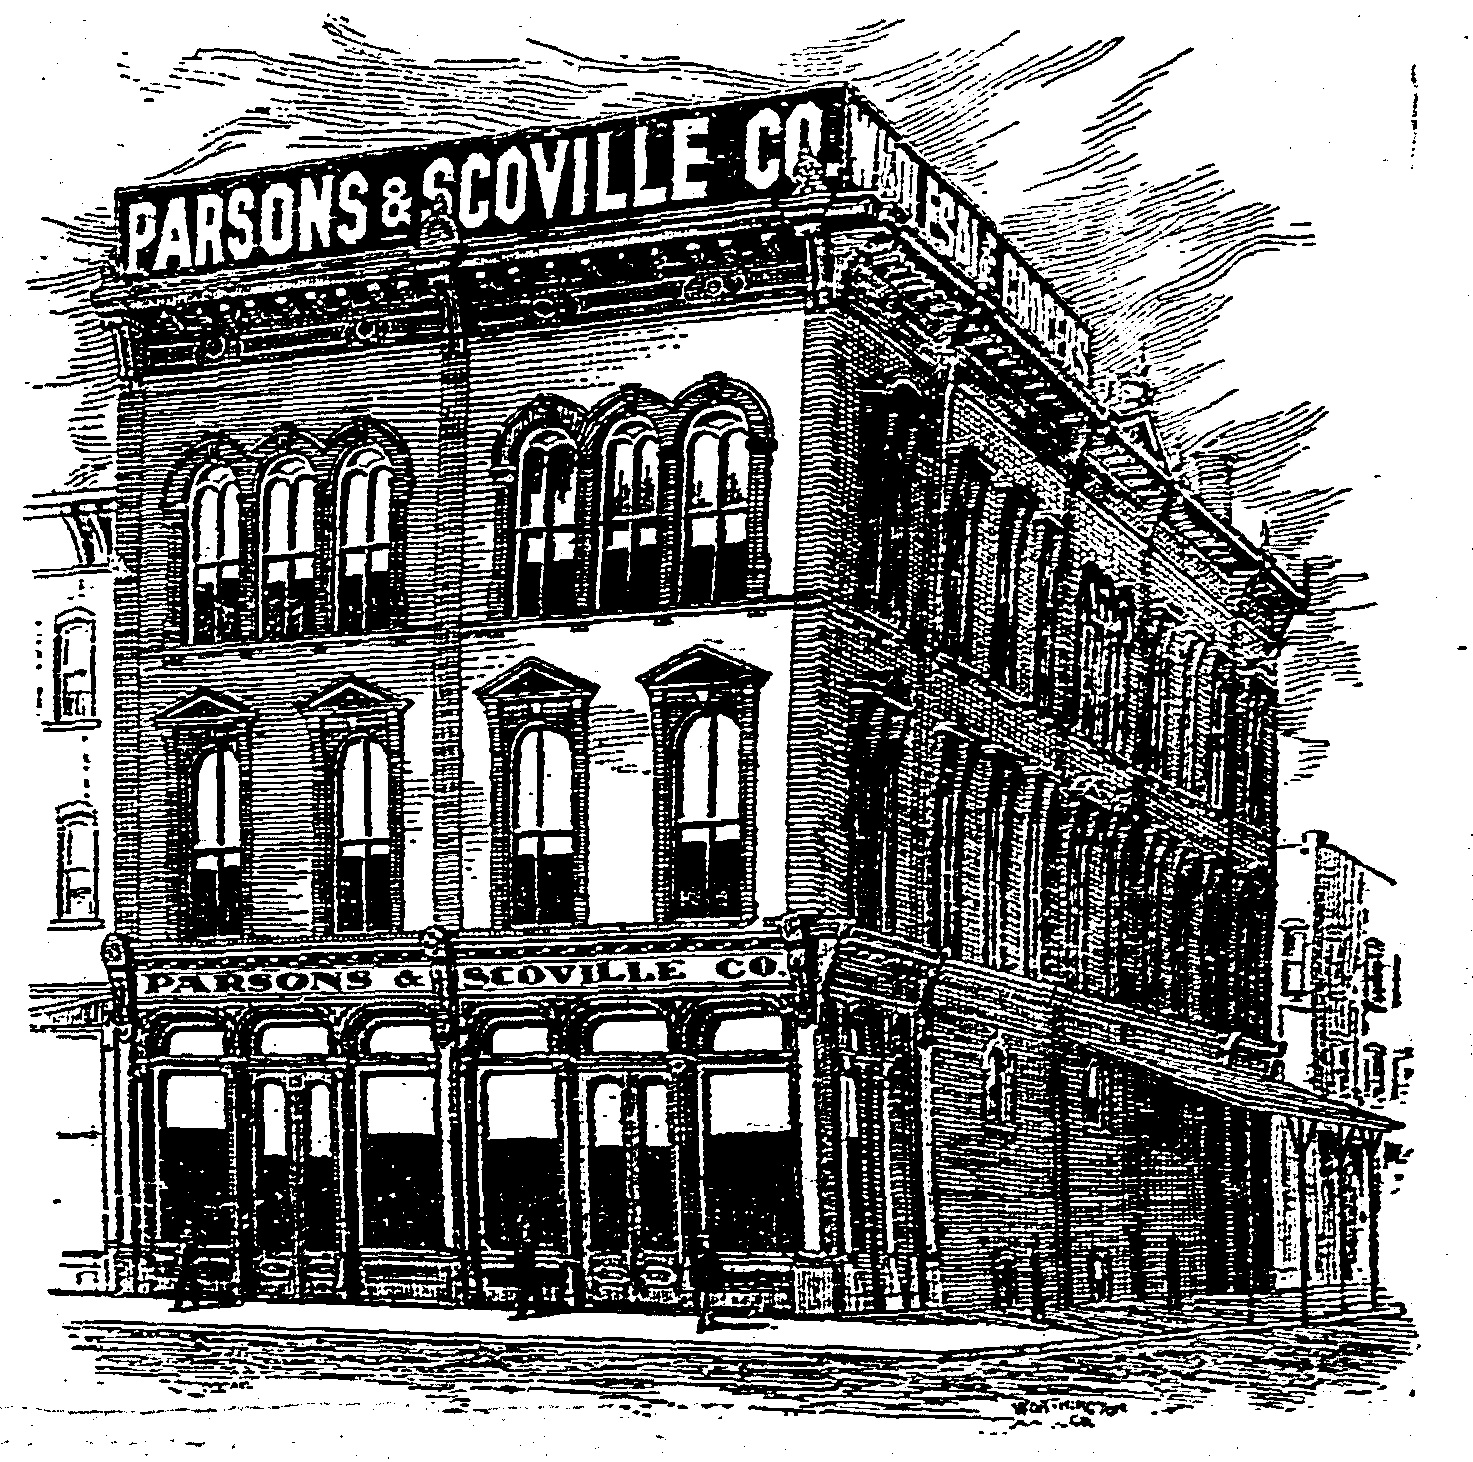 Old Parsons & Scoville